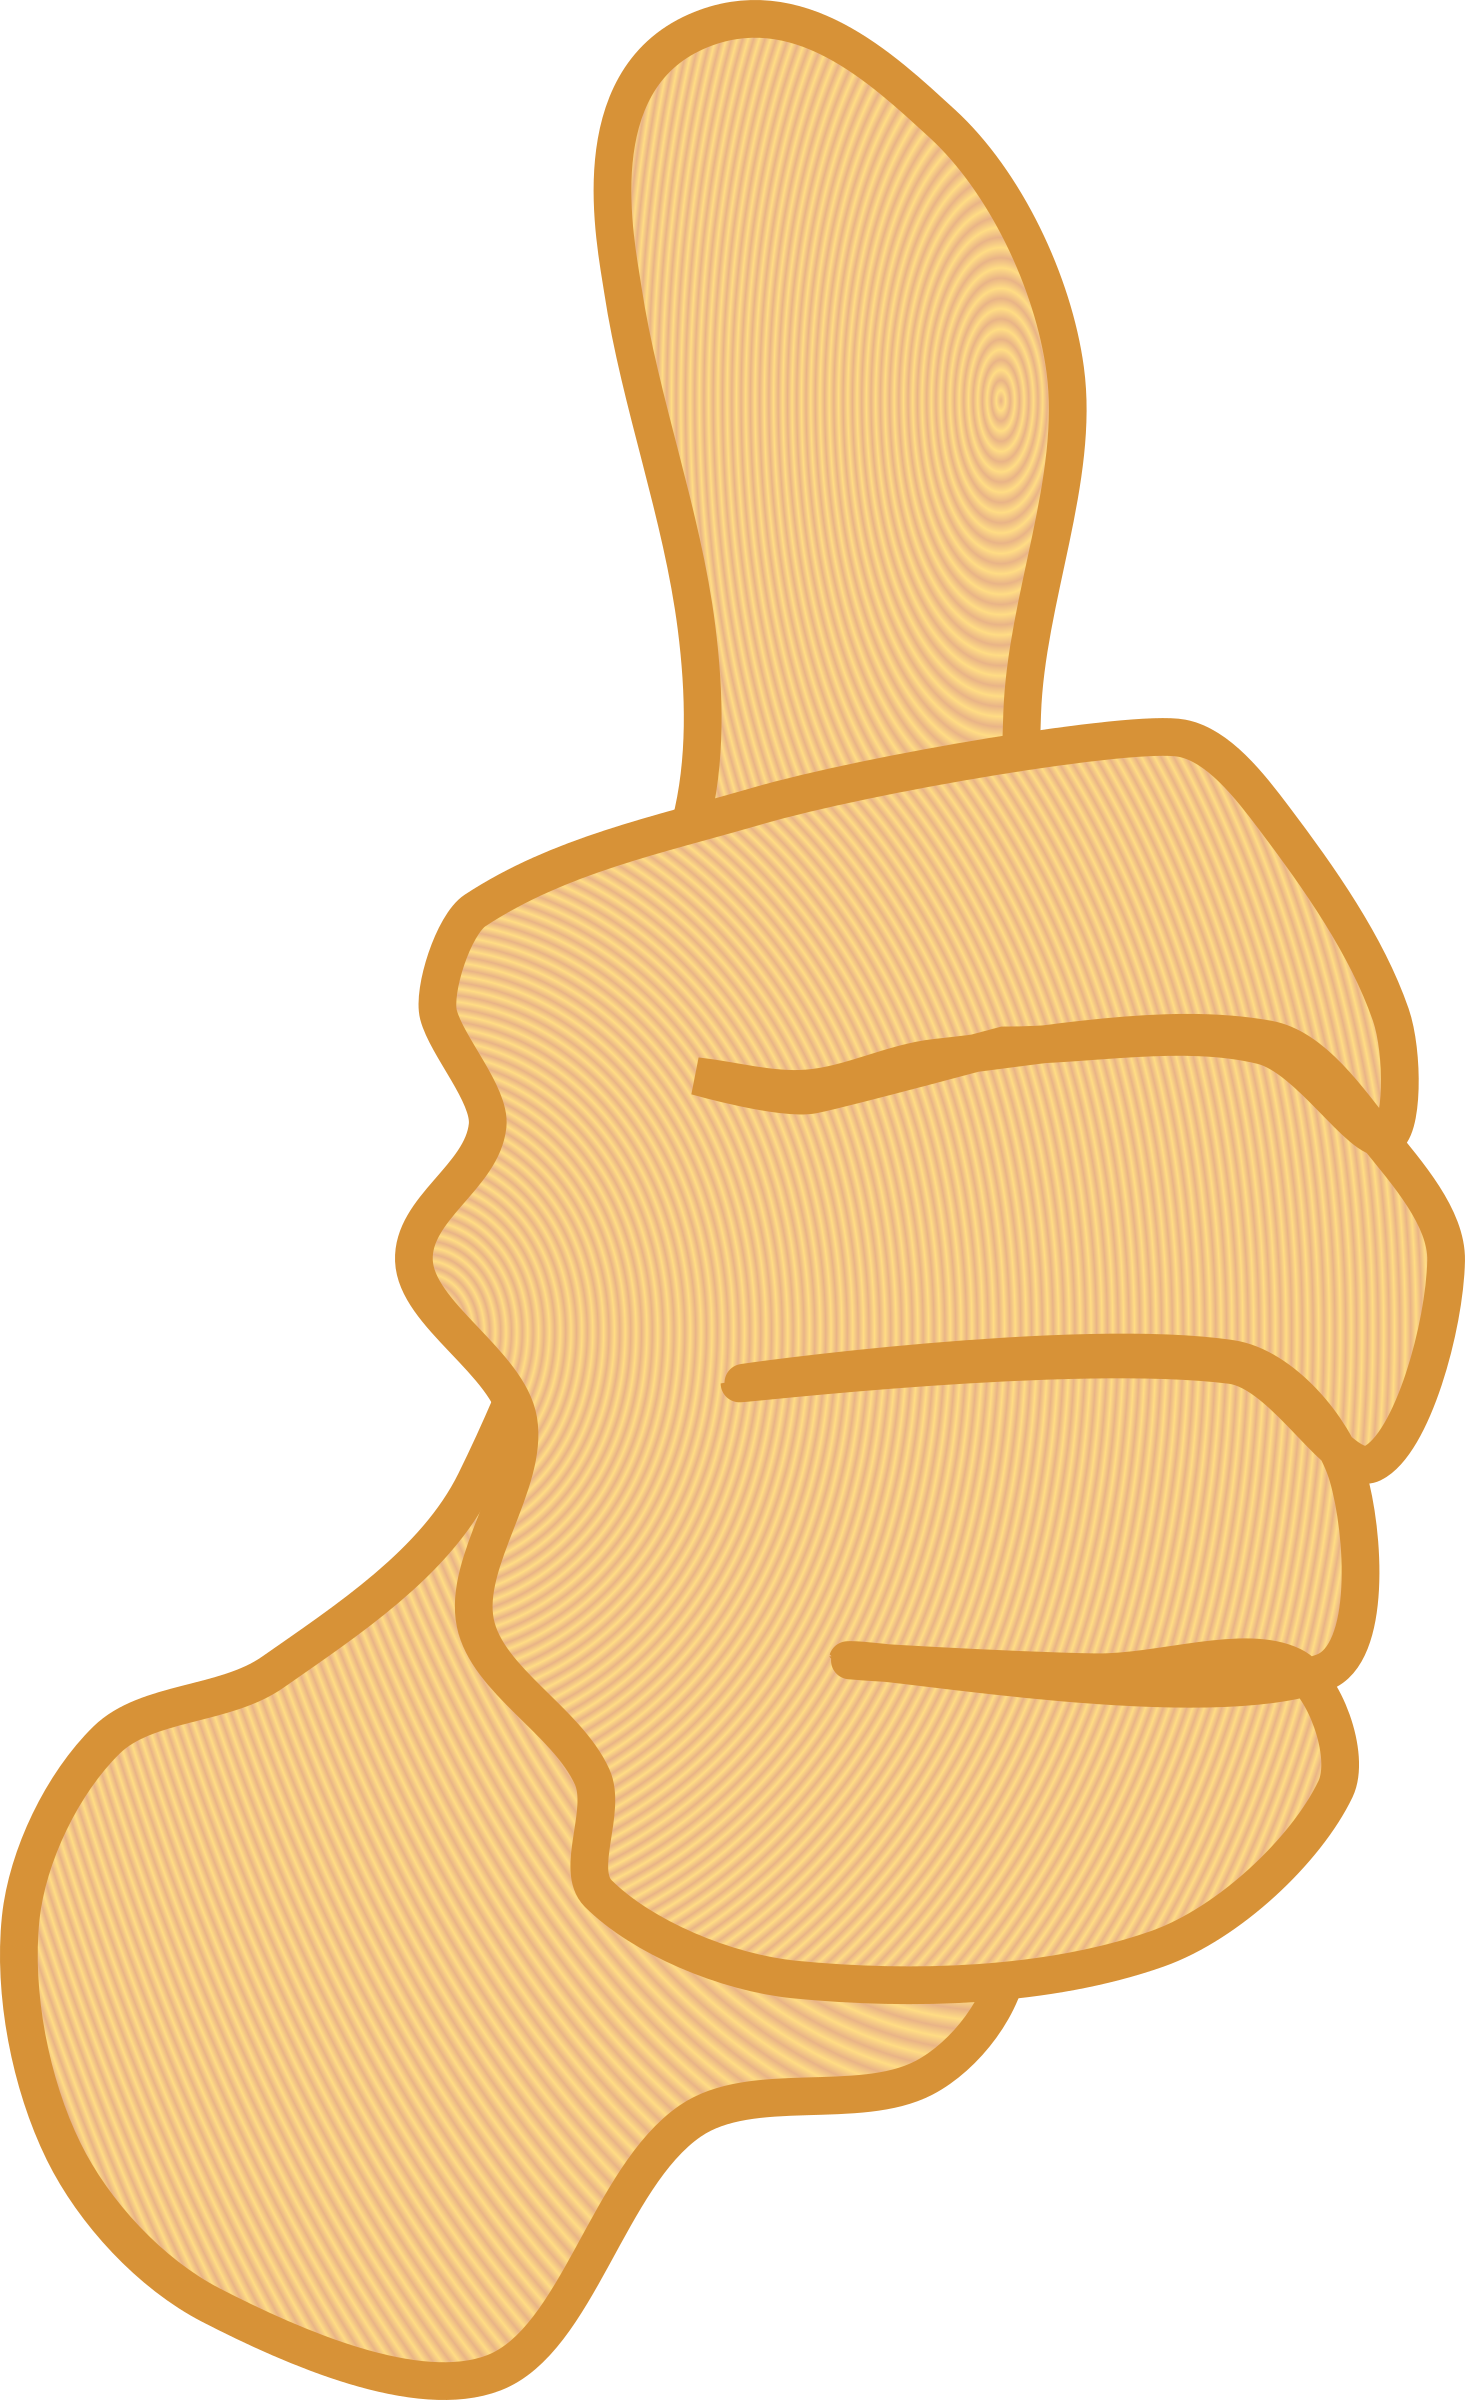 Thumbs up nathan eady. Thumb clipart certainly